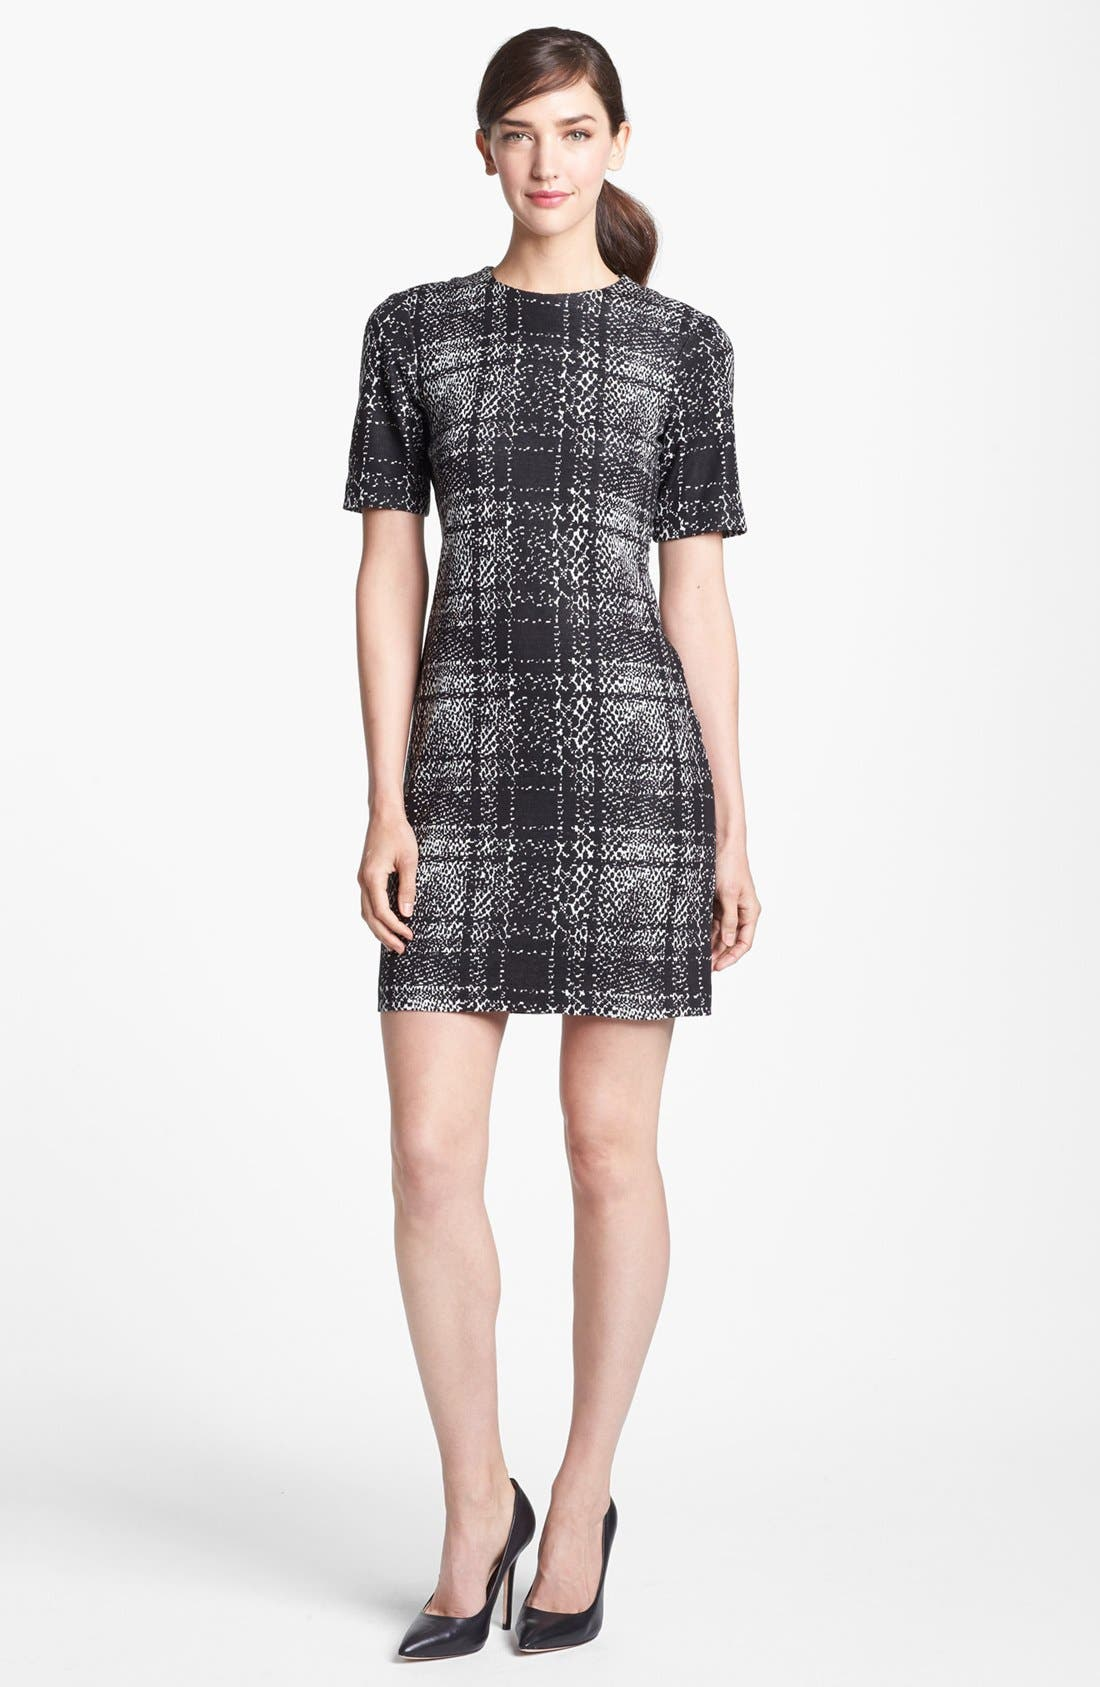 Main Image - 4.collective Mixed Print Sheath Dress